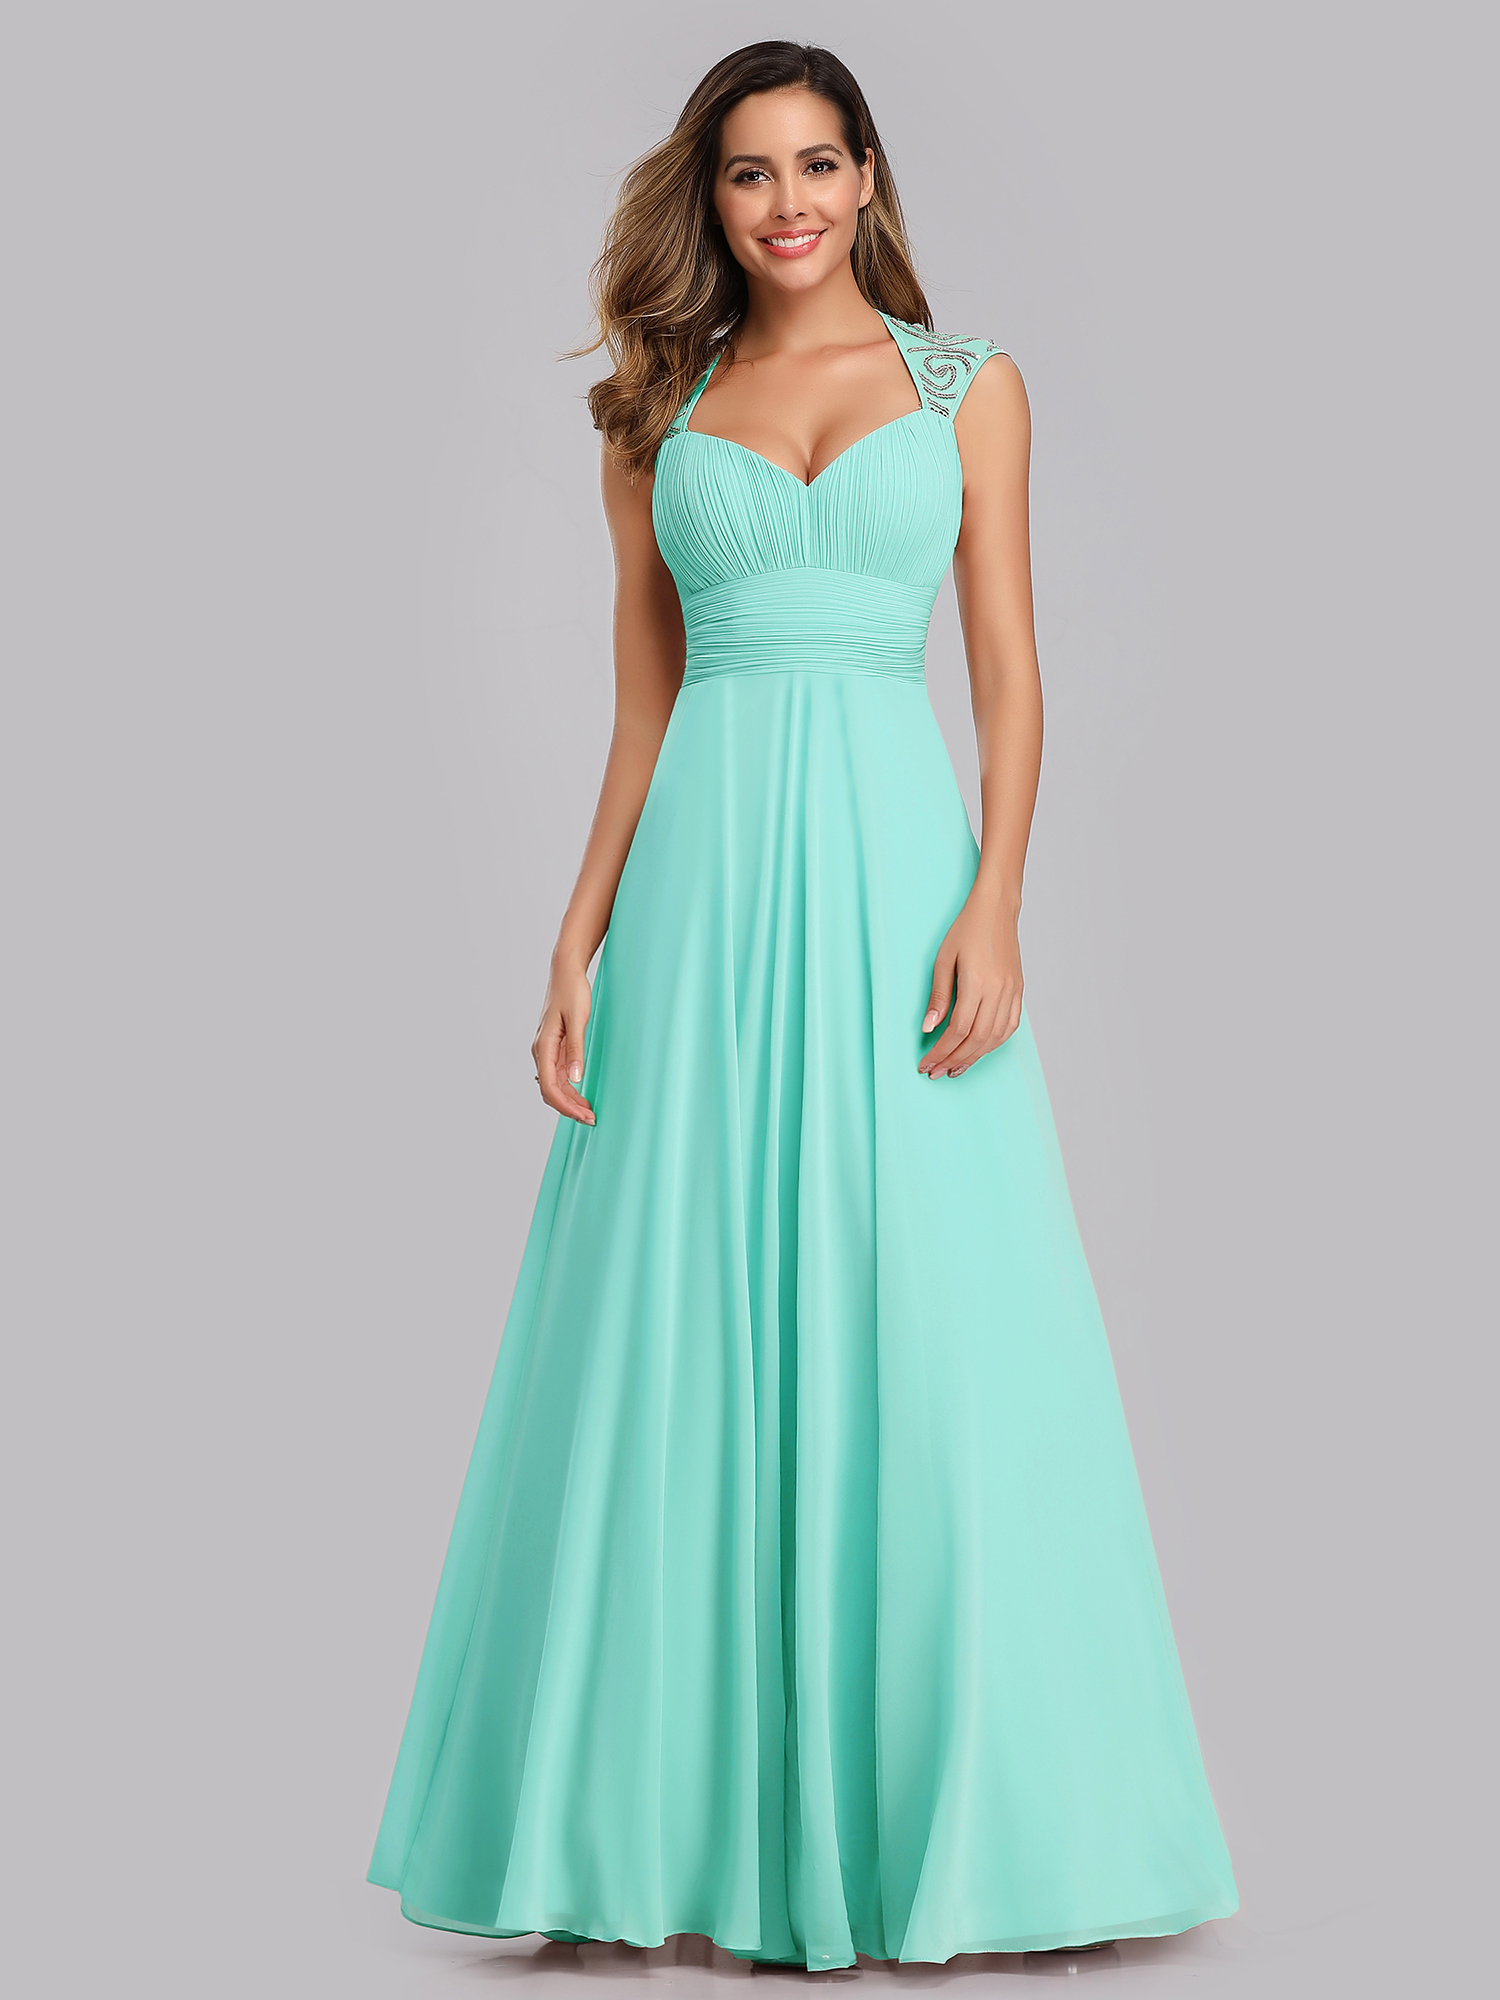 Cap Sleeve Bridesmaid Dress Long V-neck Evening Party Dresses 09672 ...